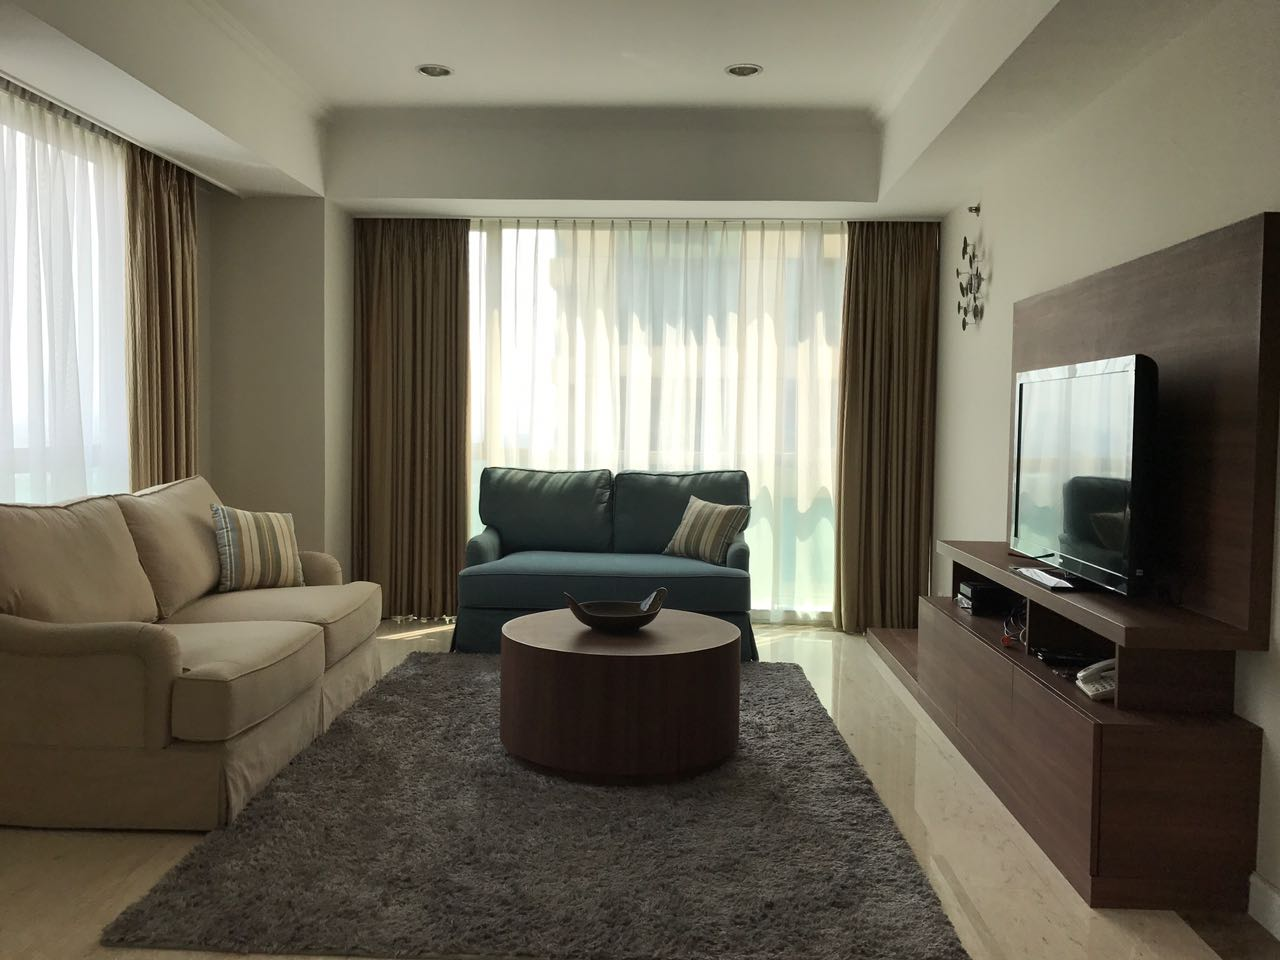 Casablanca Apartment 3Bed 2Bath 1Maid - Fully Furnished in Good Location.